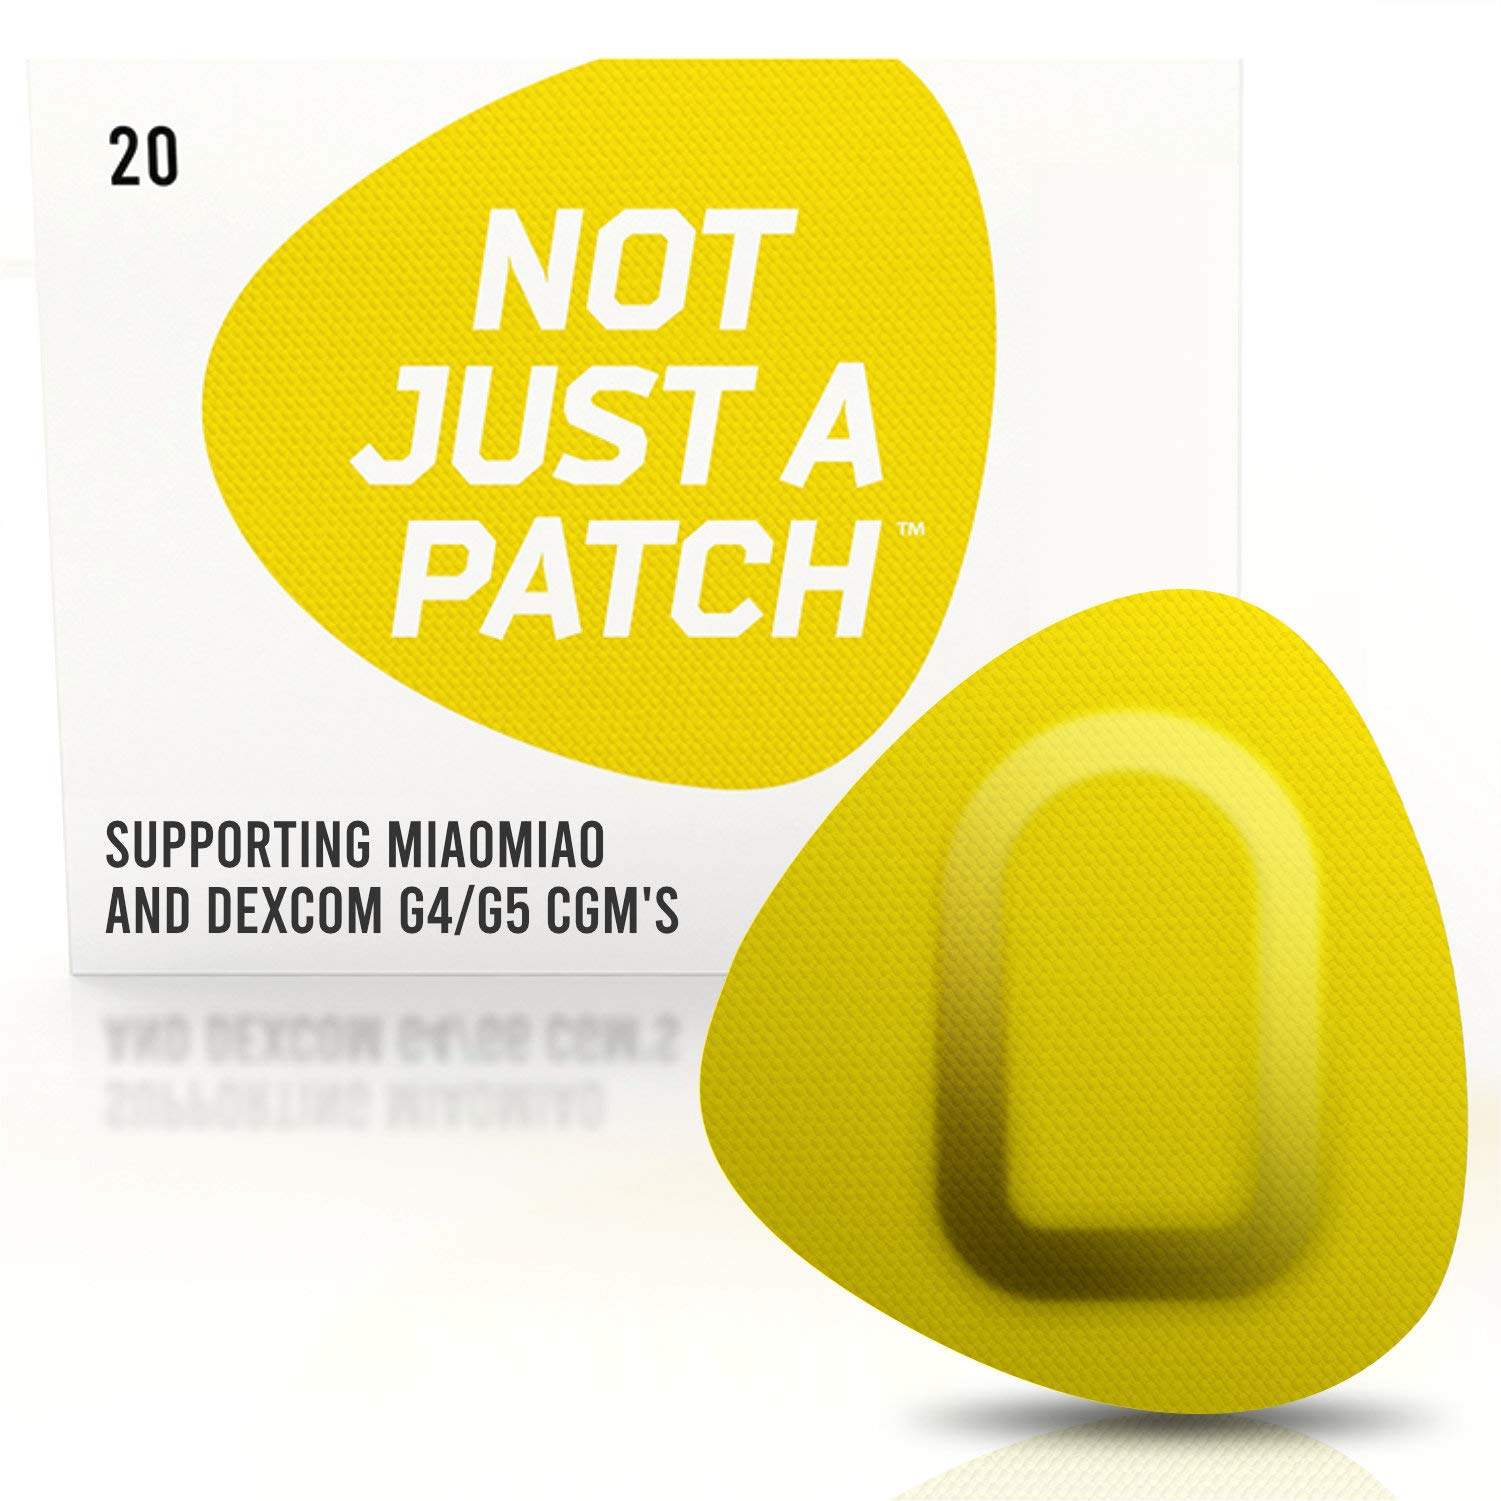 NOT JUST A PATCH Adhesive Patch for Dexcom G5 G6 & MiaoMiao Sensors. 10+ Days - Long Lasting - Hypoallergenic - Original & Unique Design - Yellow ($1/Week) - 9 Colors